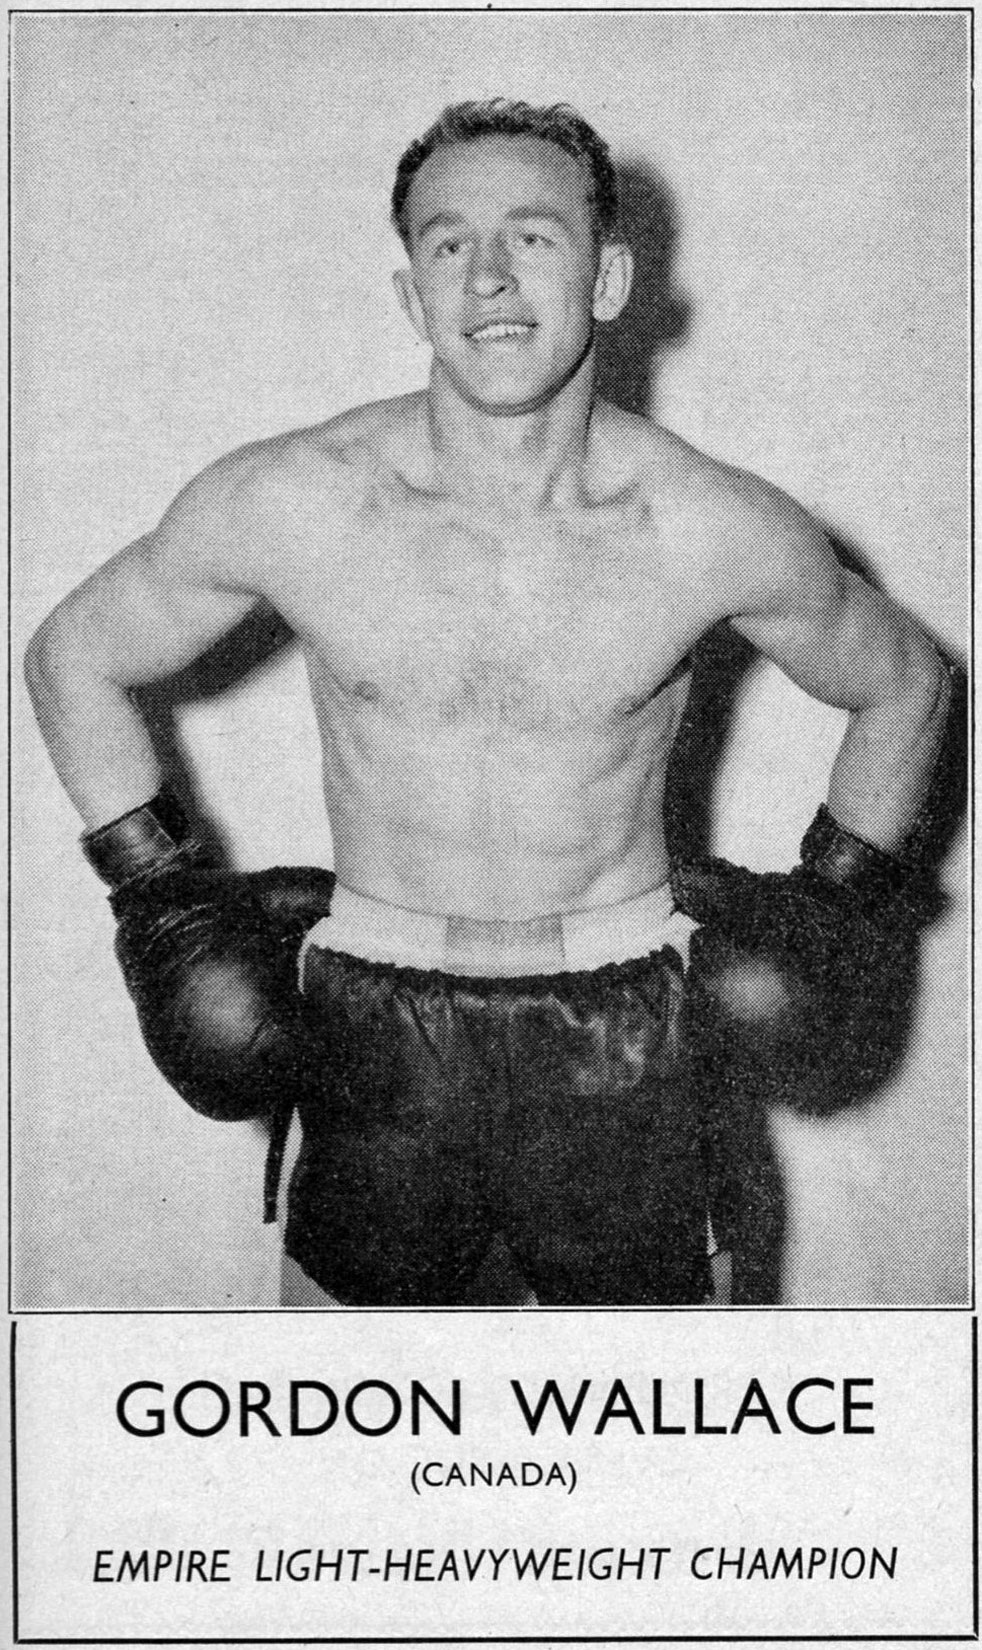 Gord Wallace became the British-Empire light-heavyweight boxing champion in 1956 defeating British boxer Ron Barton.  Image courtesy of the Brant Historical Society